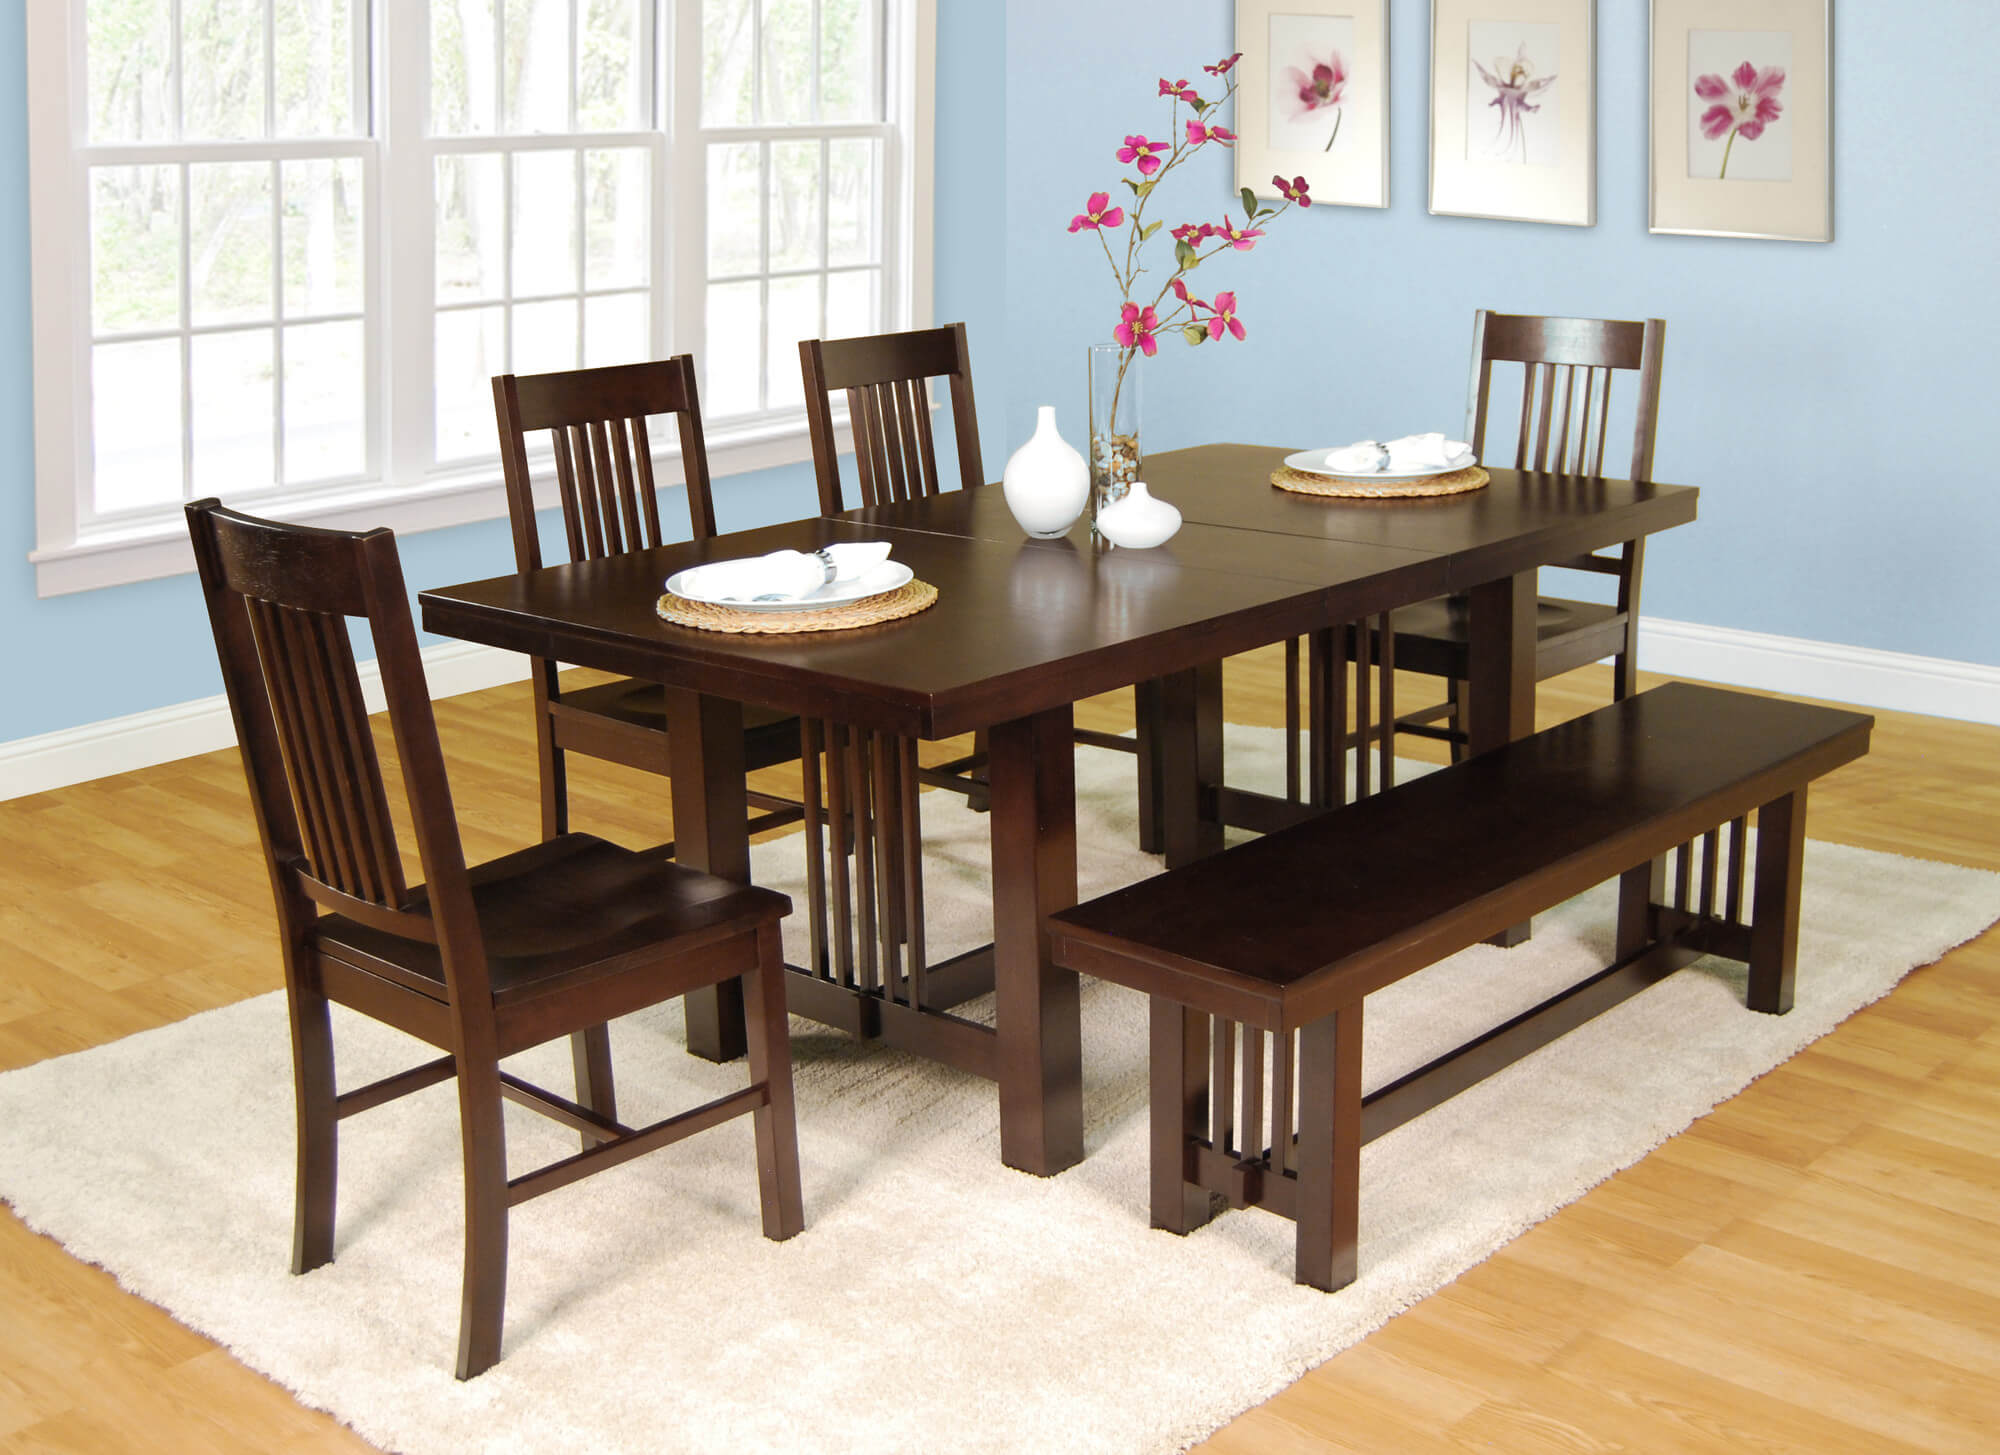 dining room sets bench seating small kitchen table Here s a very solid dining set with bench Table can be extended with a center